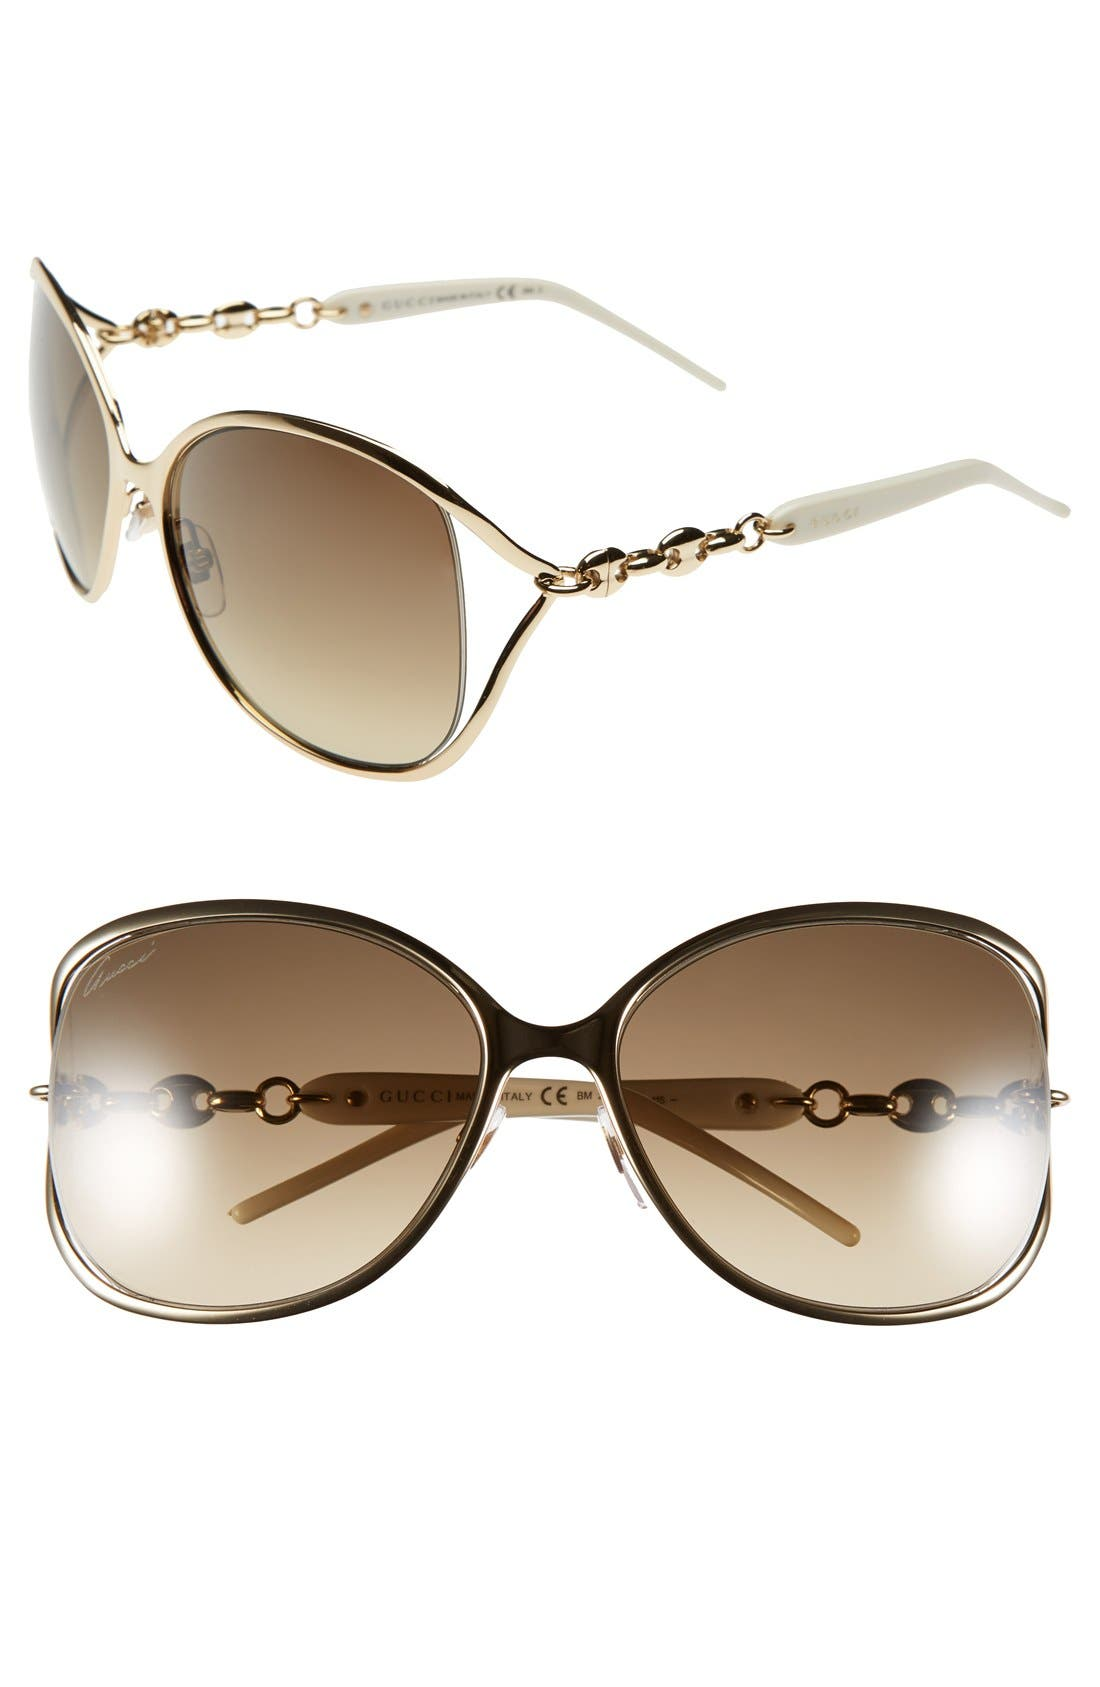 Main Image - Gucci 60mm Butterfly Sunglasses